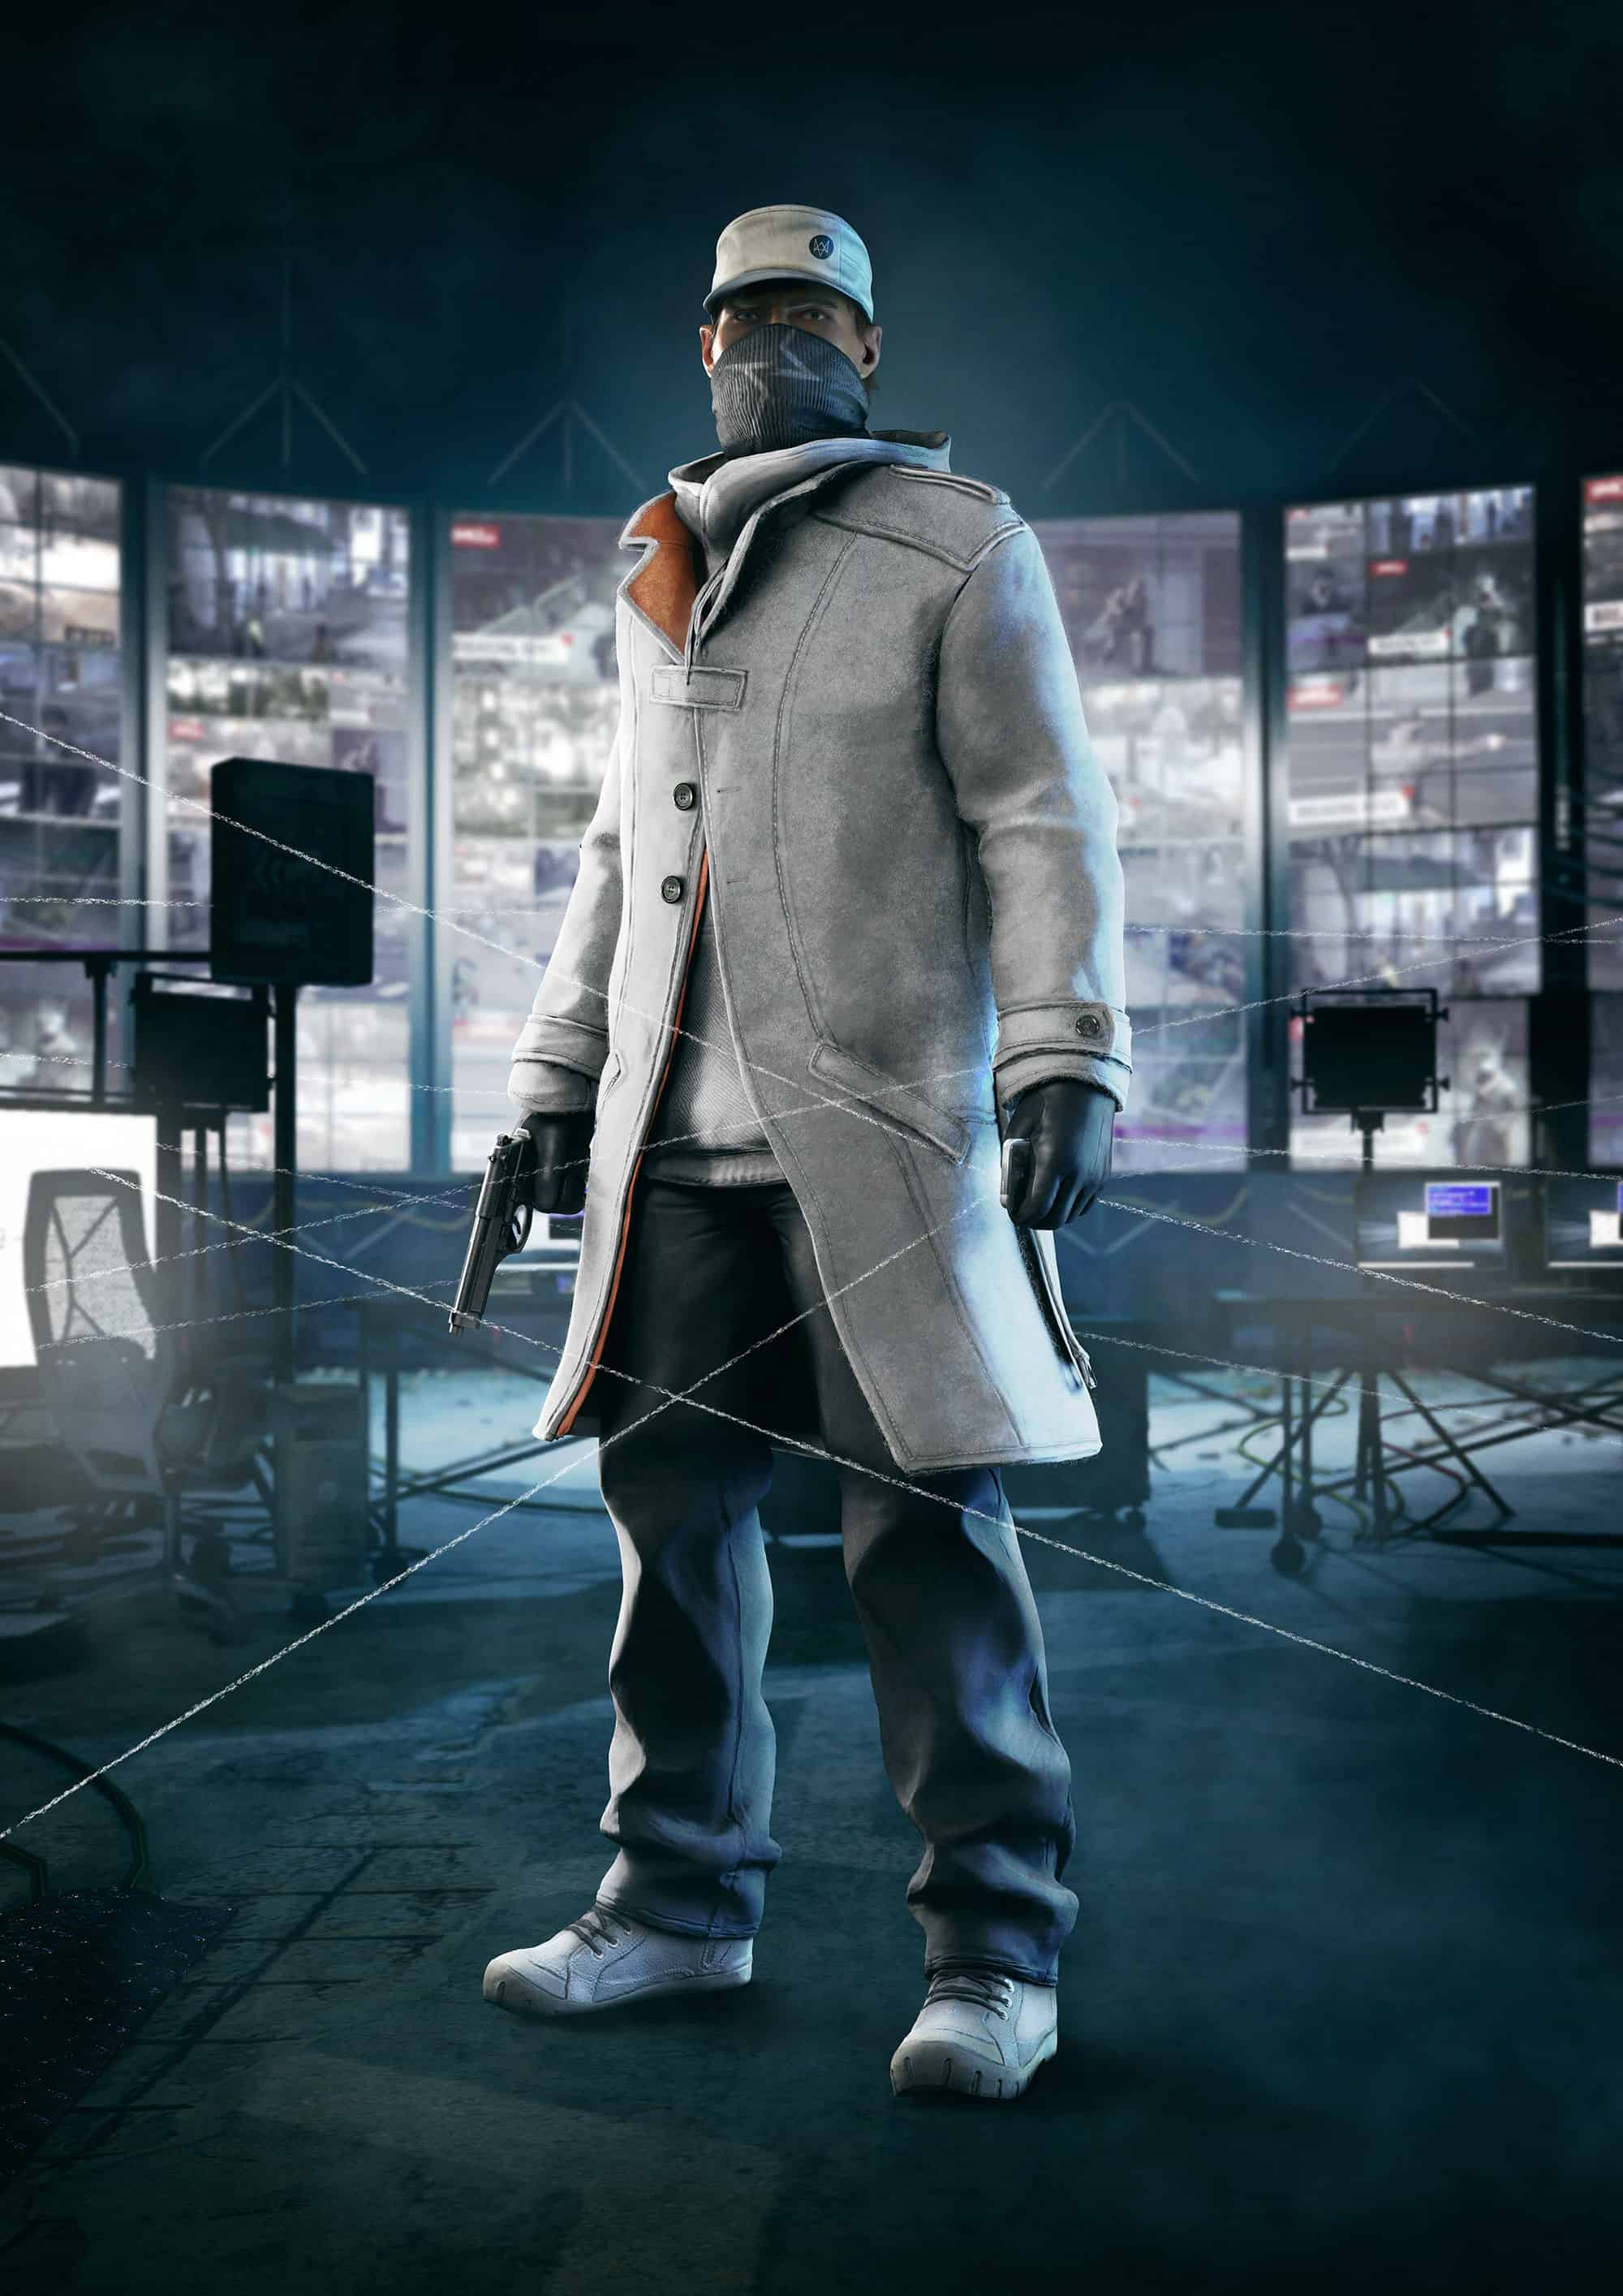 watch dogs whitehat outfit